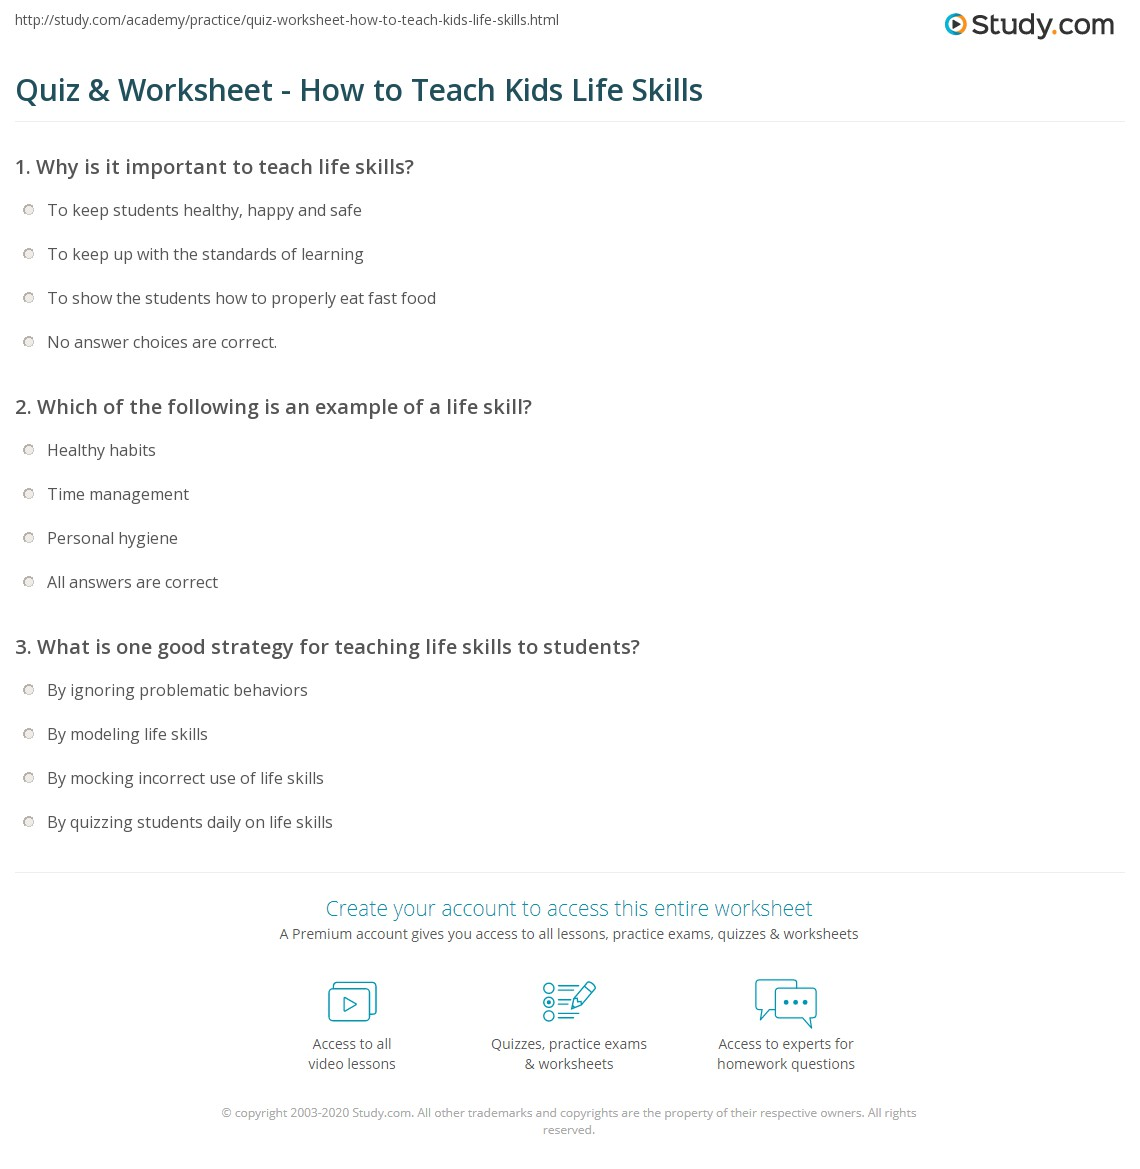 Worksheets Life Skills Math Worksheets quiz worksheet how to teach kids life skills study com print teaching children worksheet